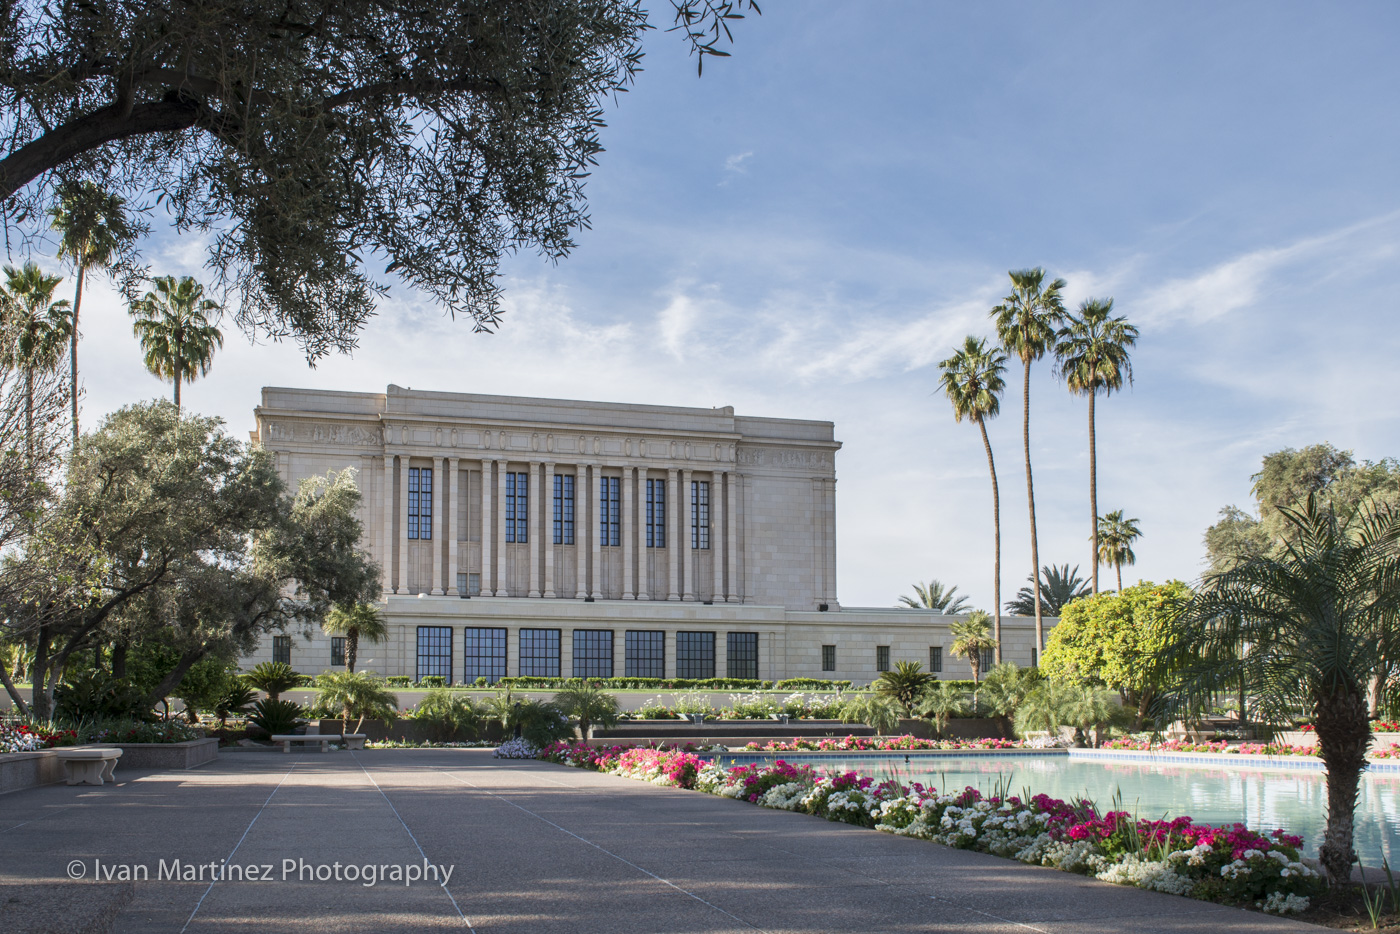 Mesa LDS Temple. Photo by Ivan Martinez Photography.